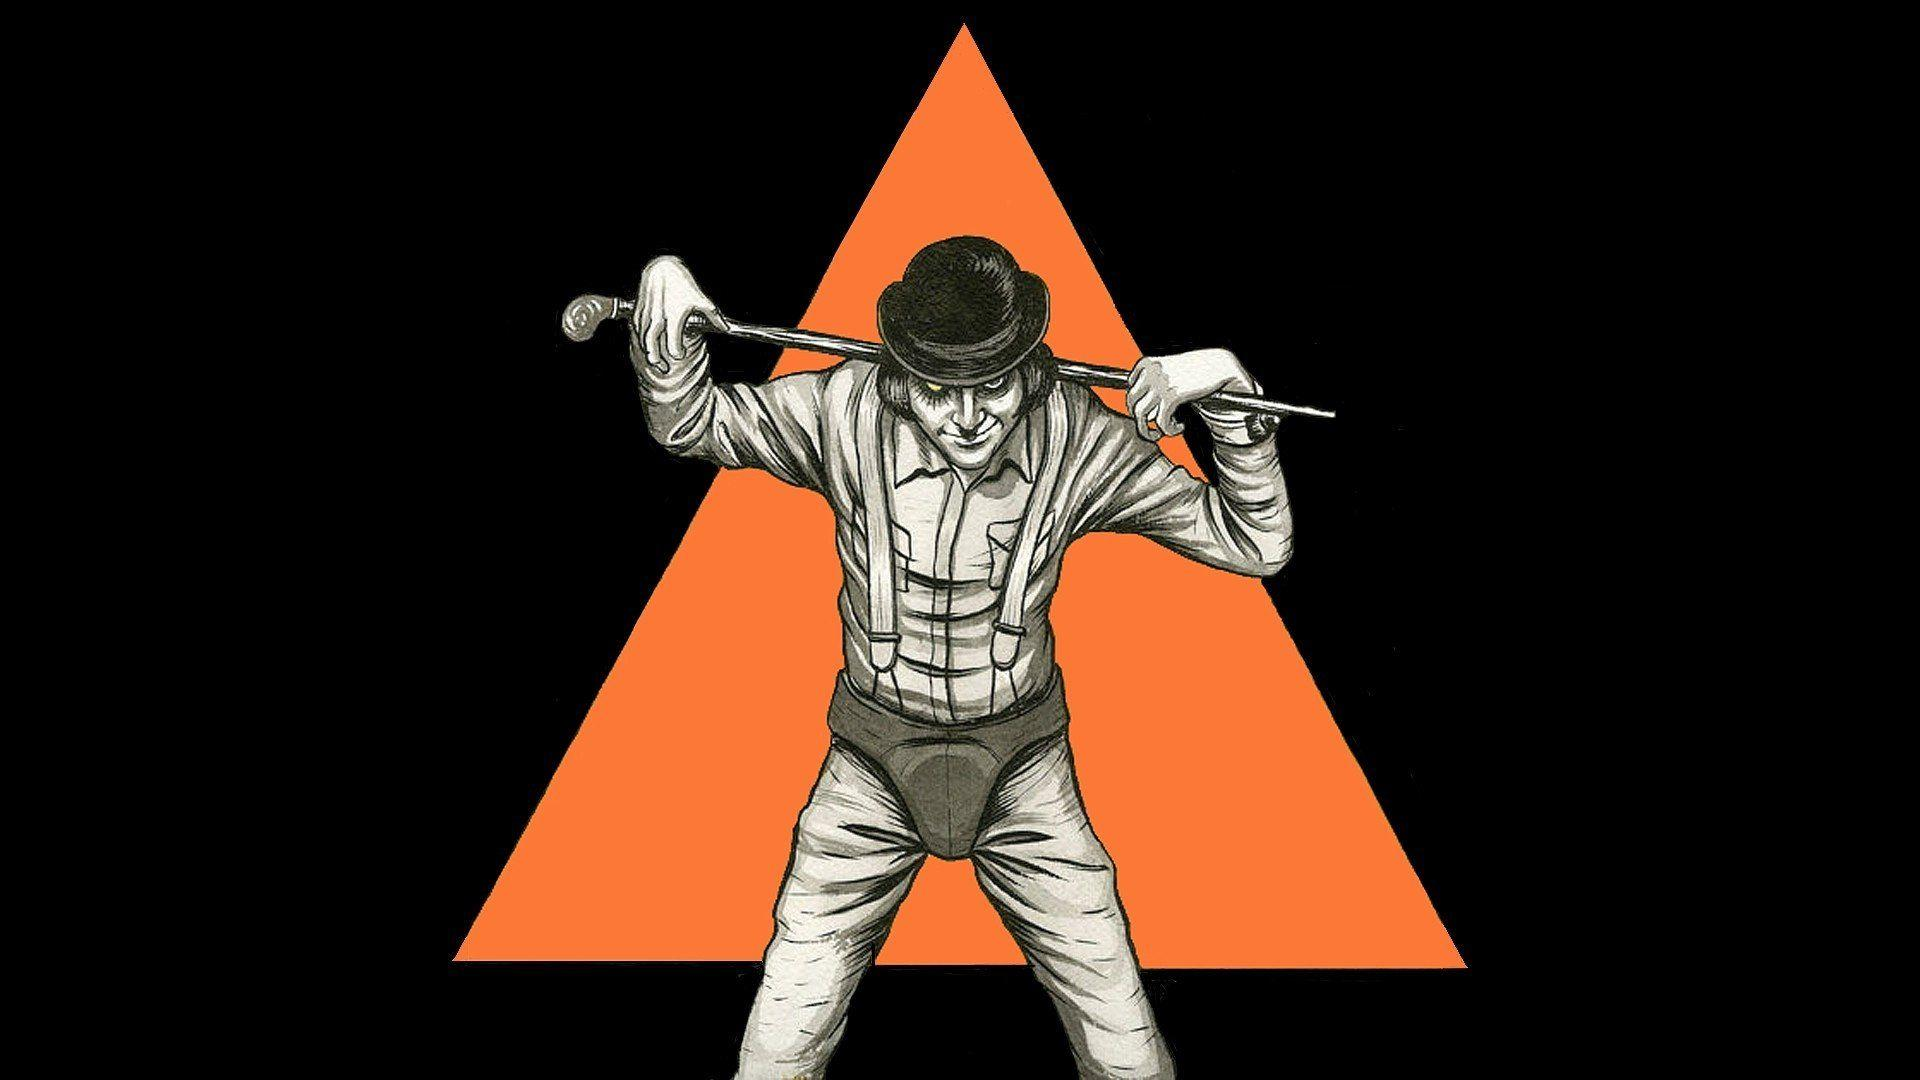 49 A Clockwork Orange HD Wallpapers | Backgrounds - Wallpaper Abyss